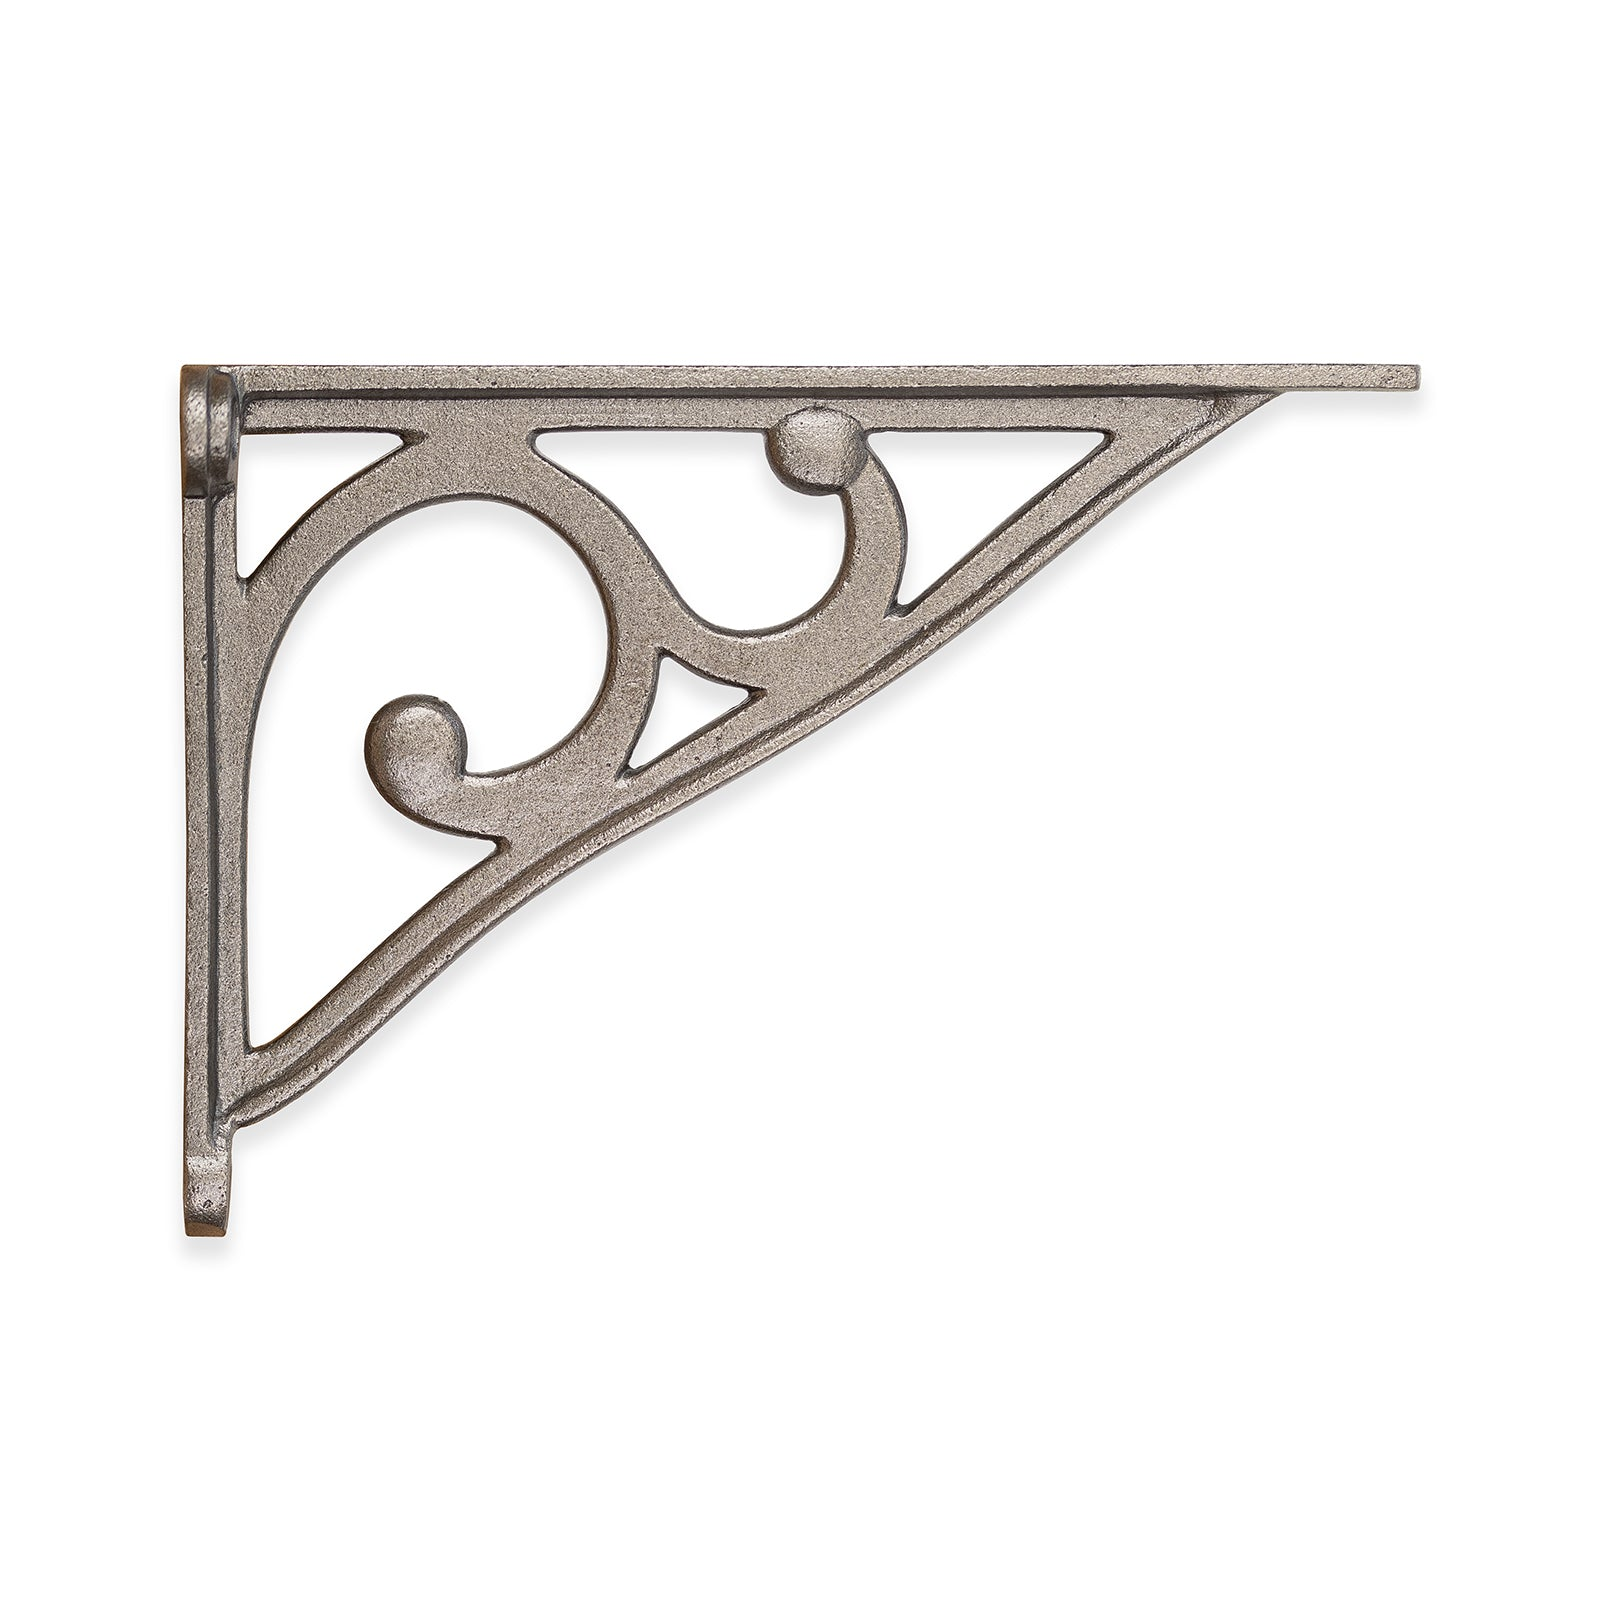 Cast Iron Fine Shelf Bracket